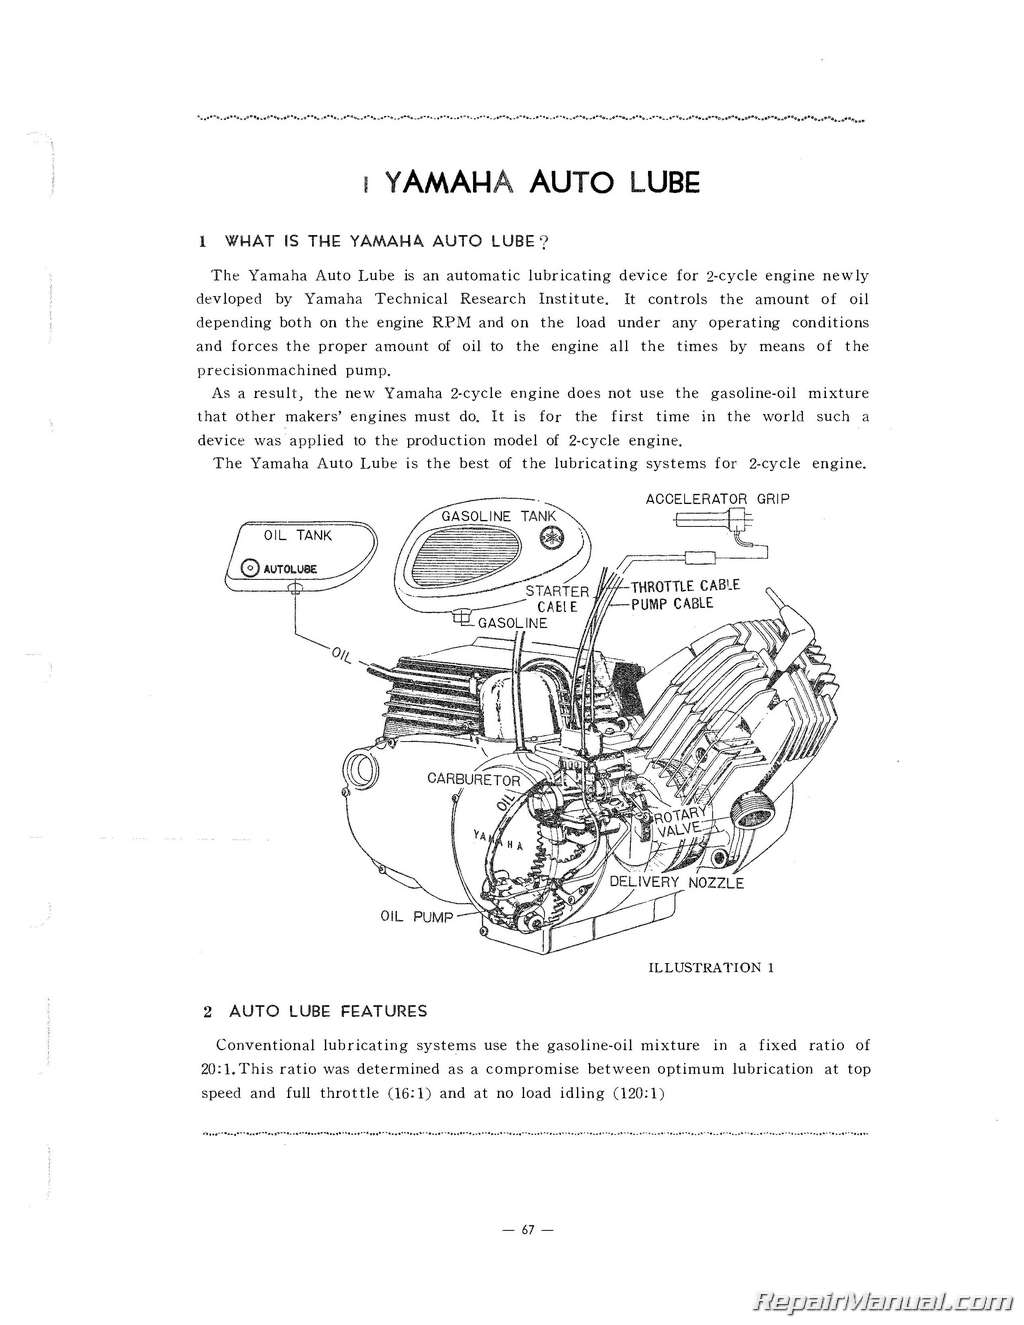 Yamaha G1 Manual 1964 1966 Motorcycle Service Repair Xt125x Wiring Diagram